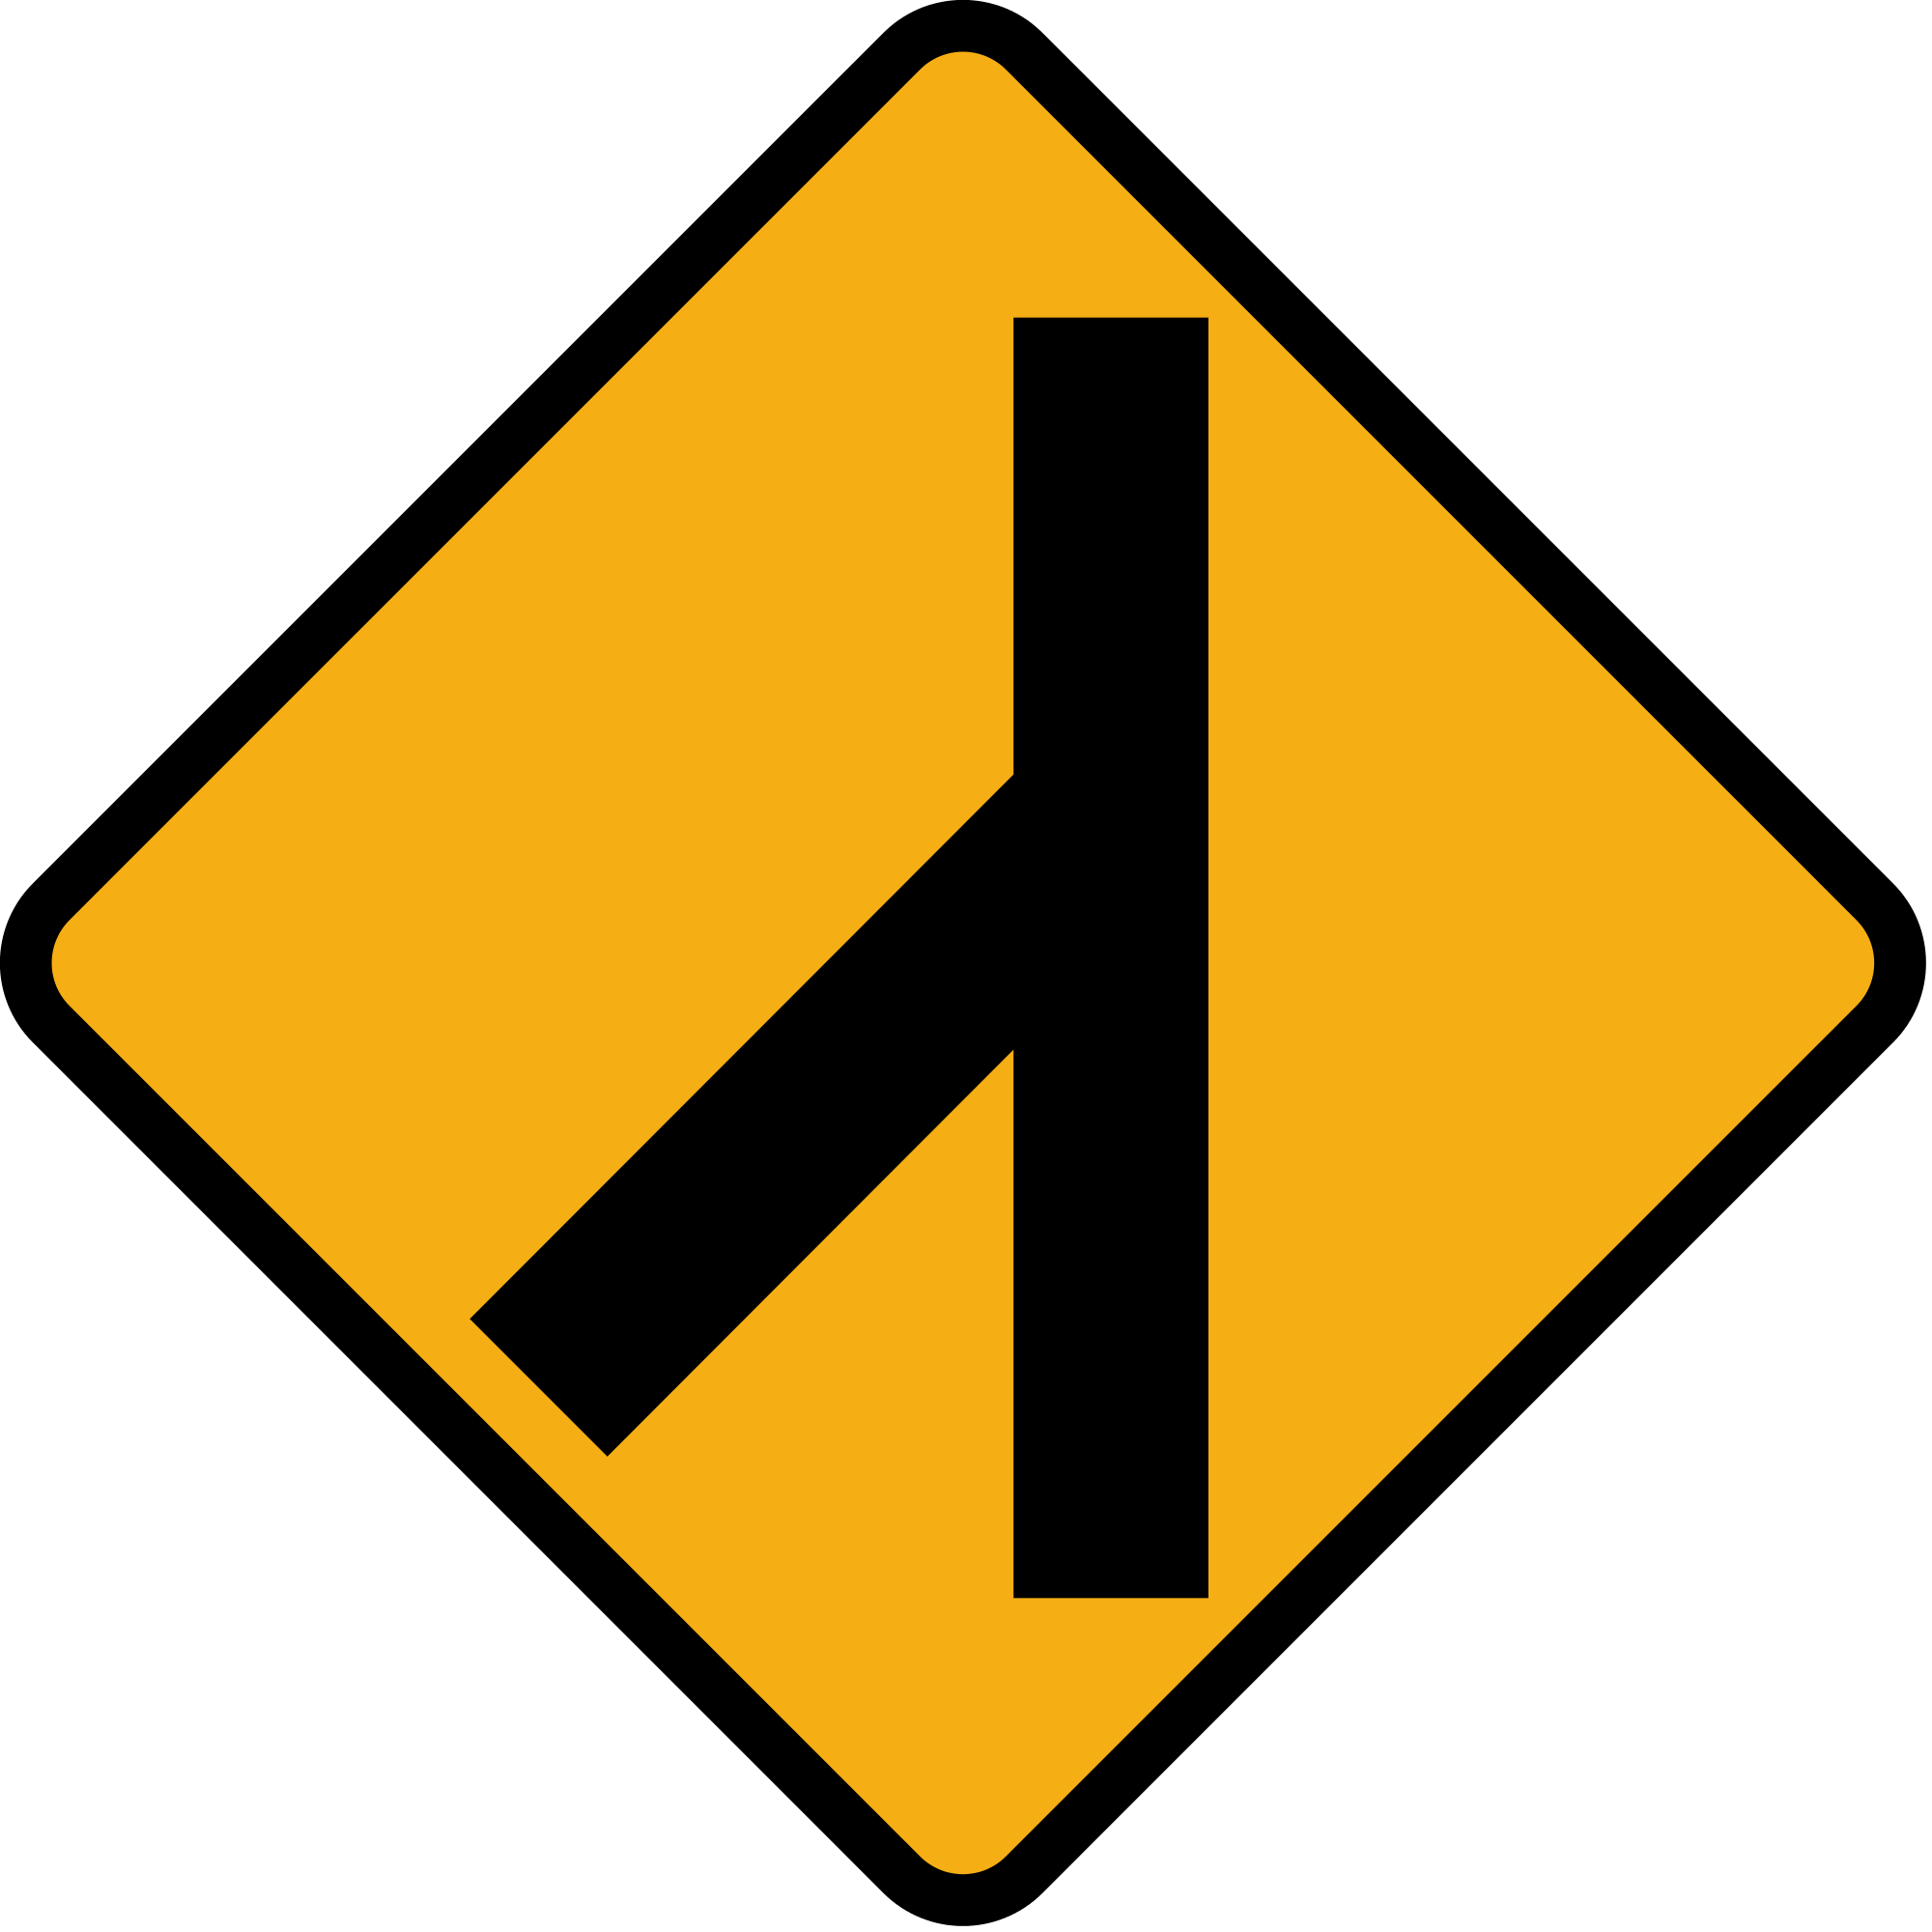 Roadsign vector. File diamond road sign